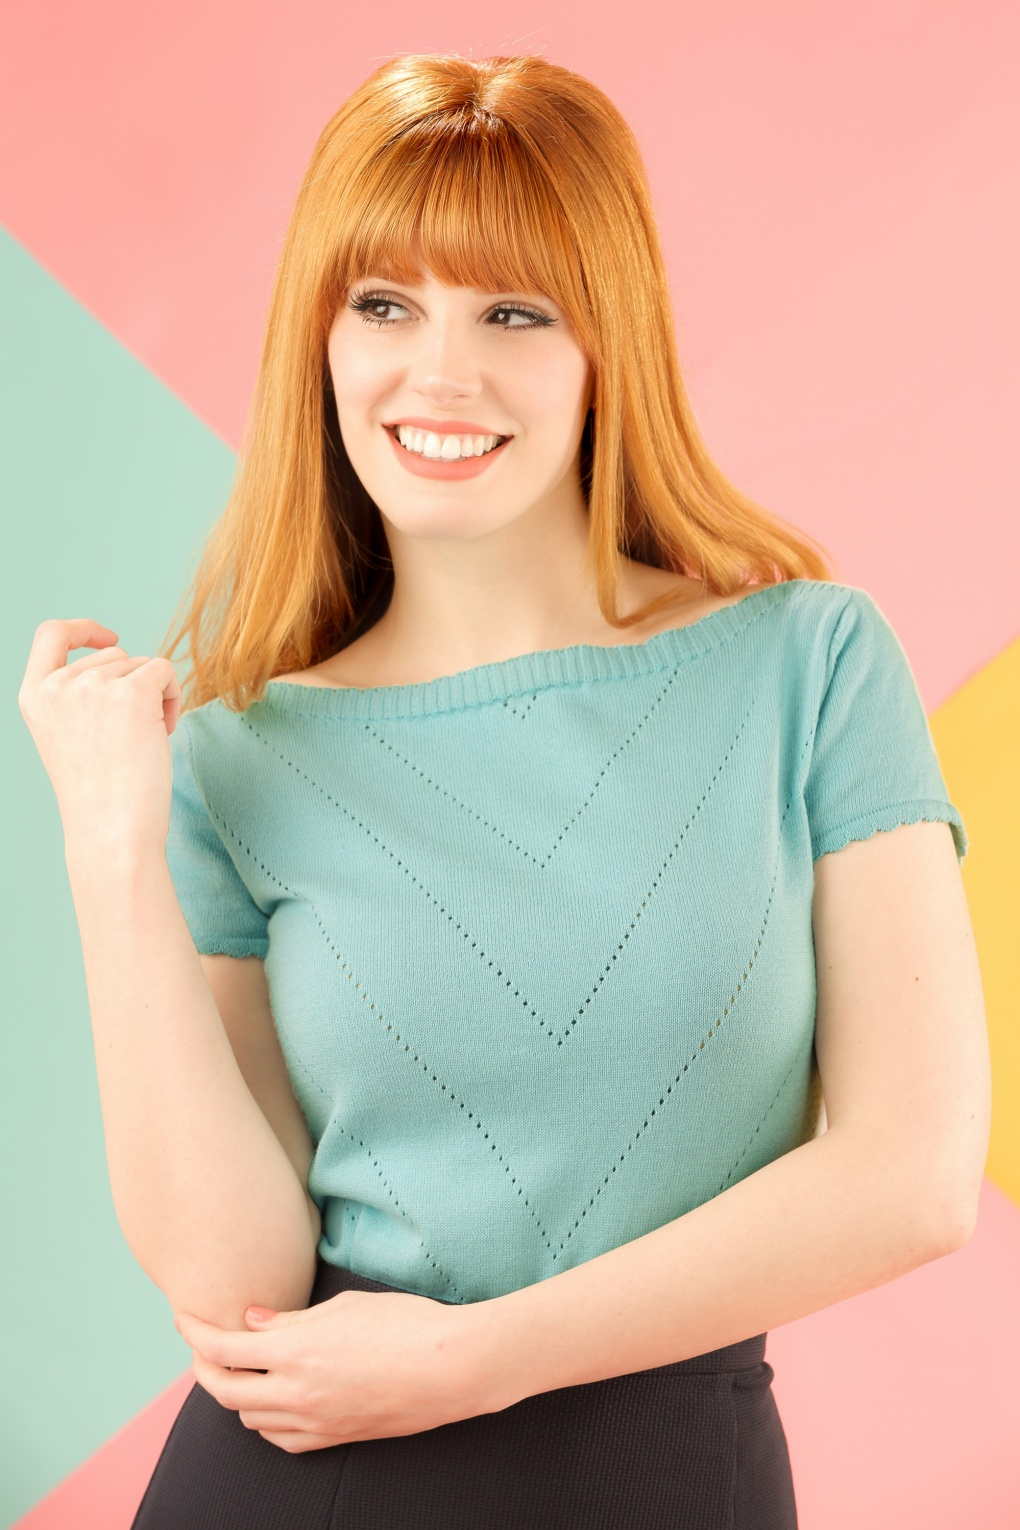 Shop 1960s Style Blouses, Shirts and Tops 60s Solene Top in Mint £50.86 AT vintagedancer.com